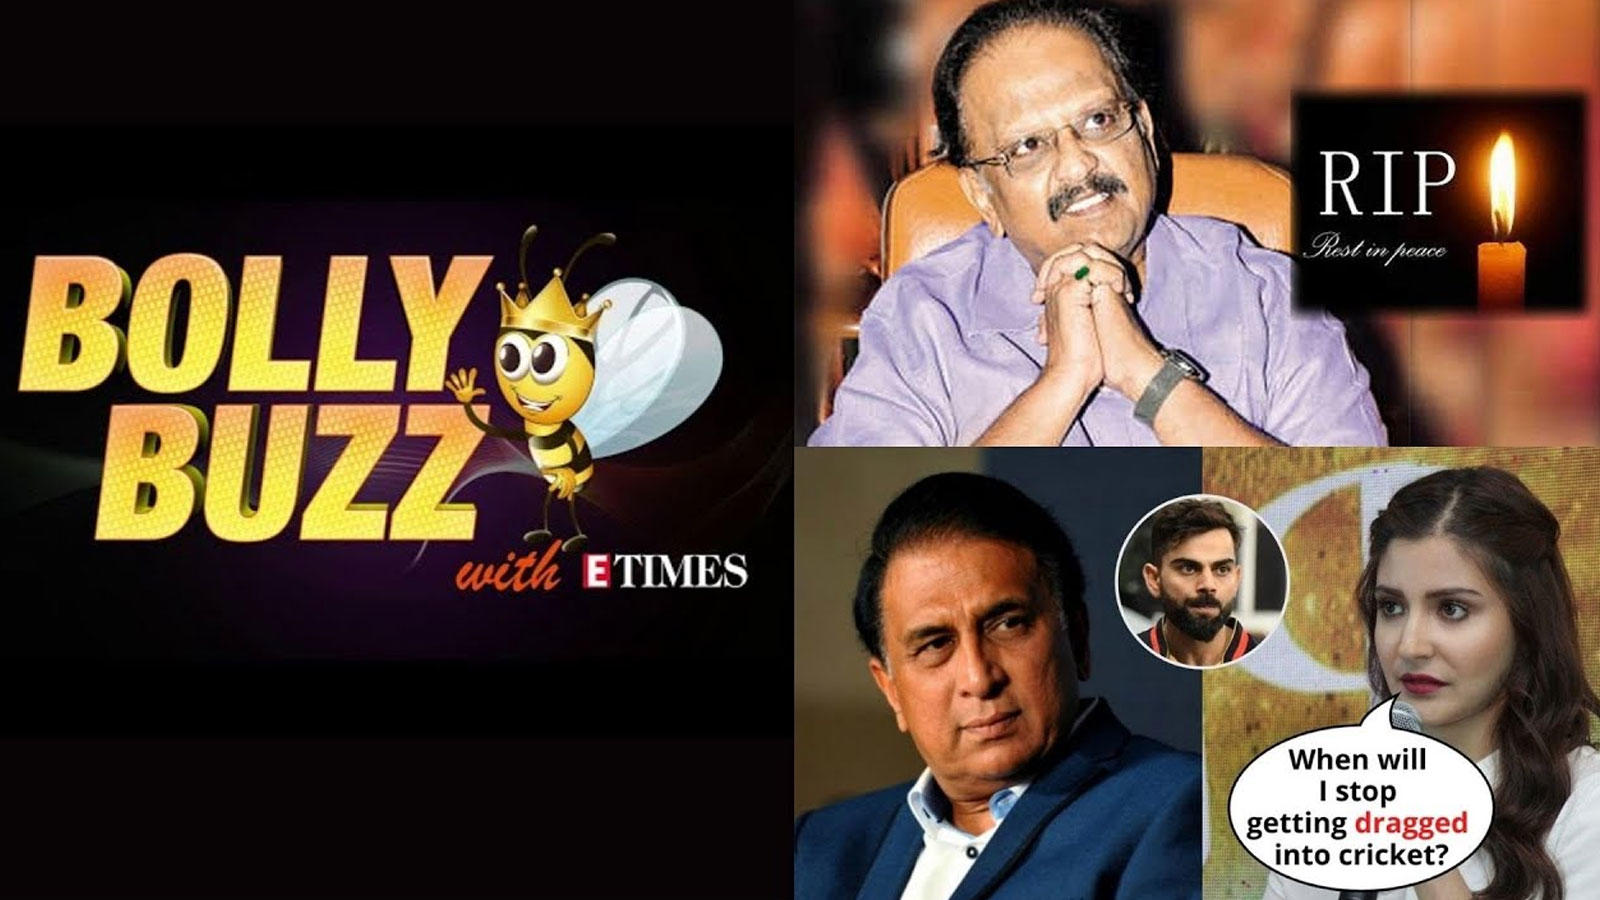 bolly-buzz-sp-balasubrahmanyam-passes-away-at-74-anushka-sharma-slams-sunil-gavaskar